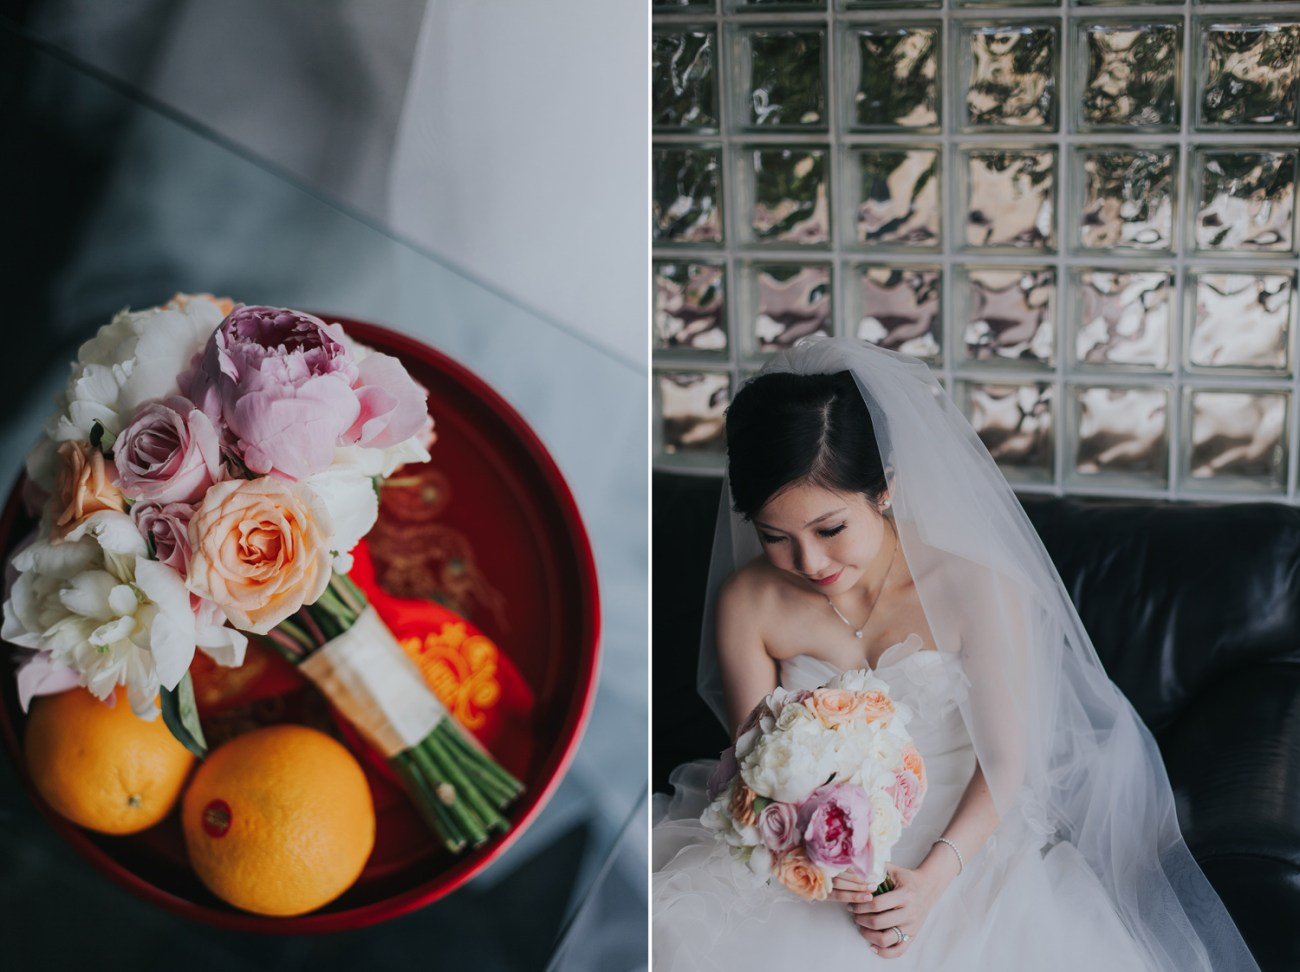 bittersweet photography Singapore wedding photographer jonathan 46